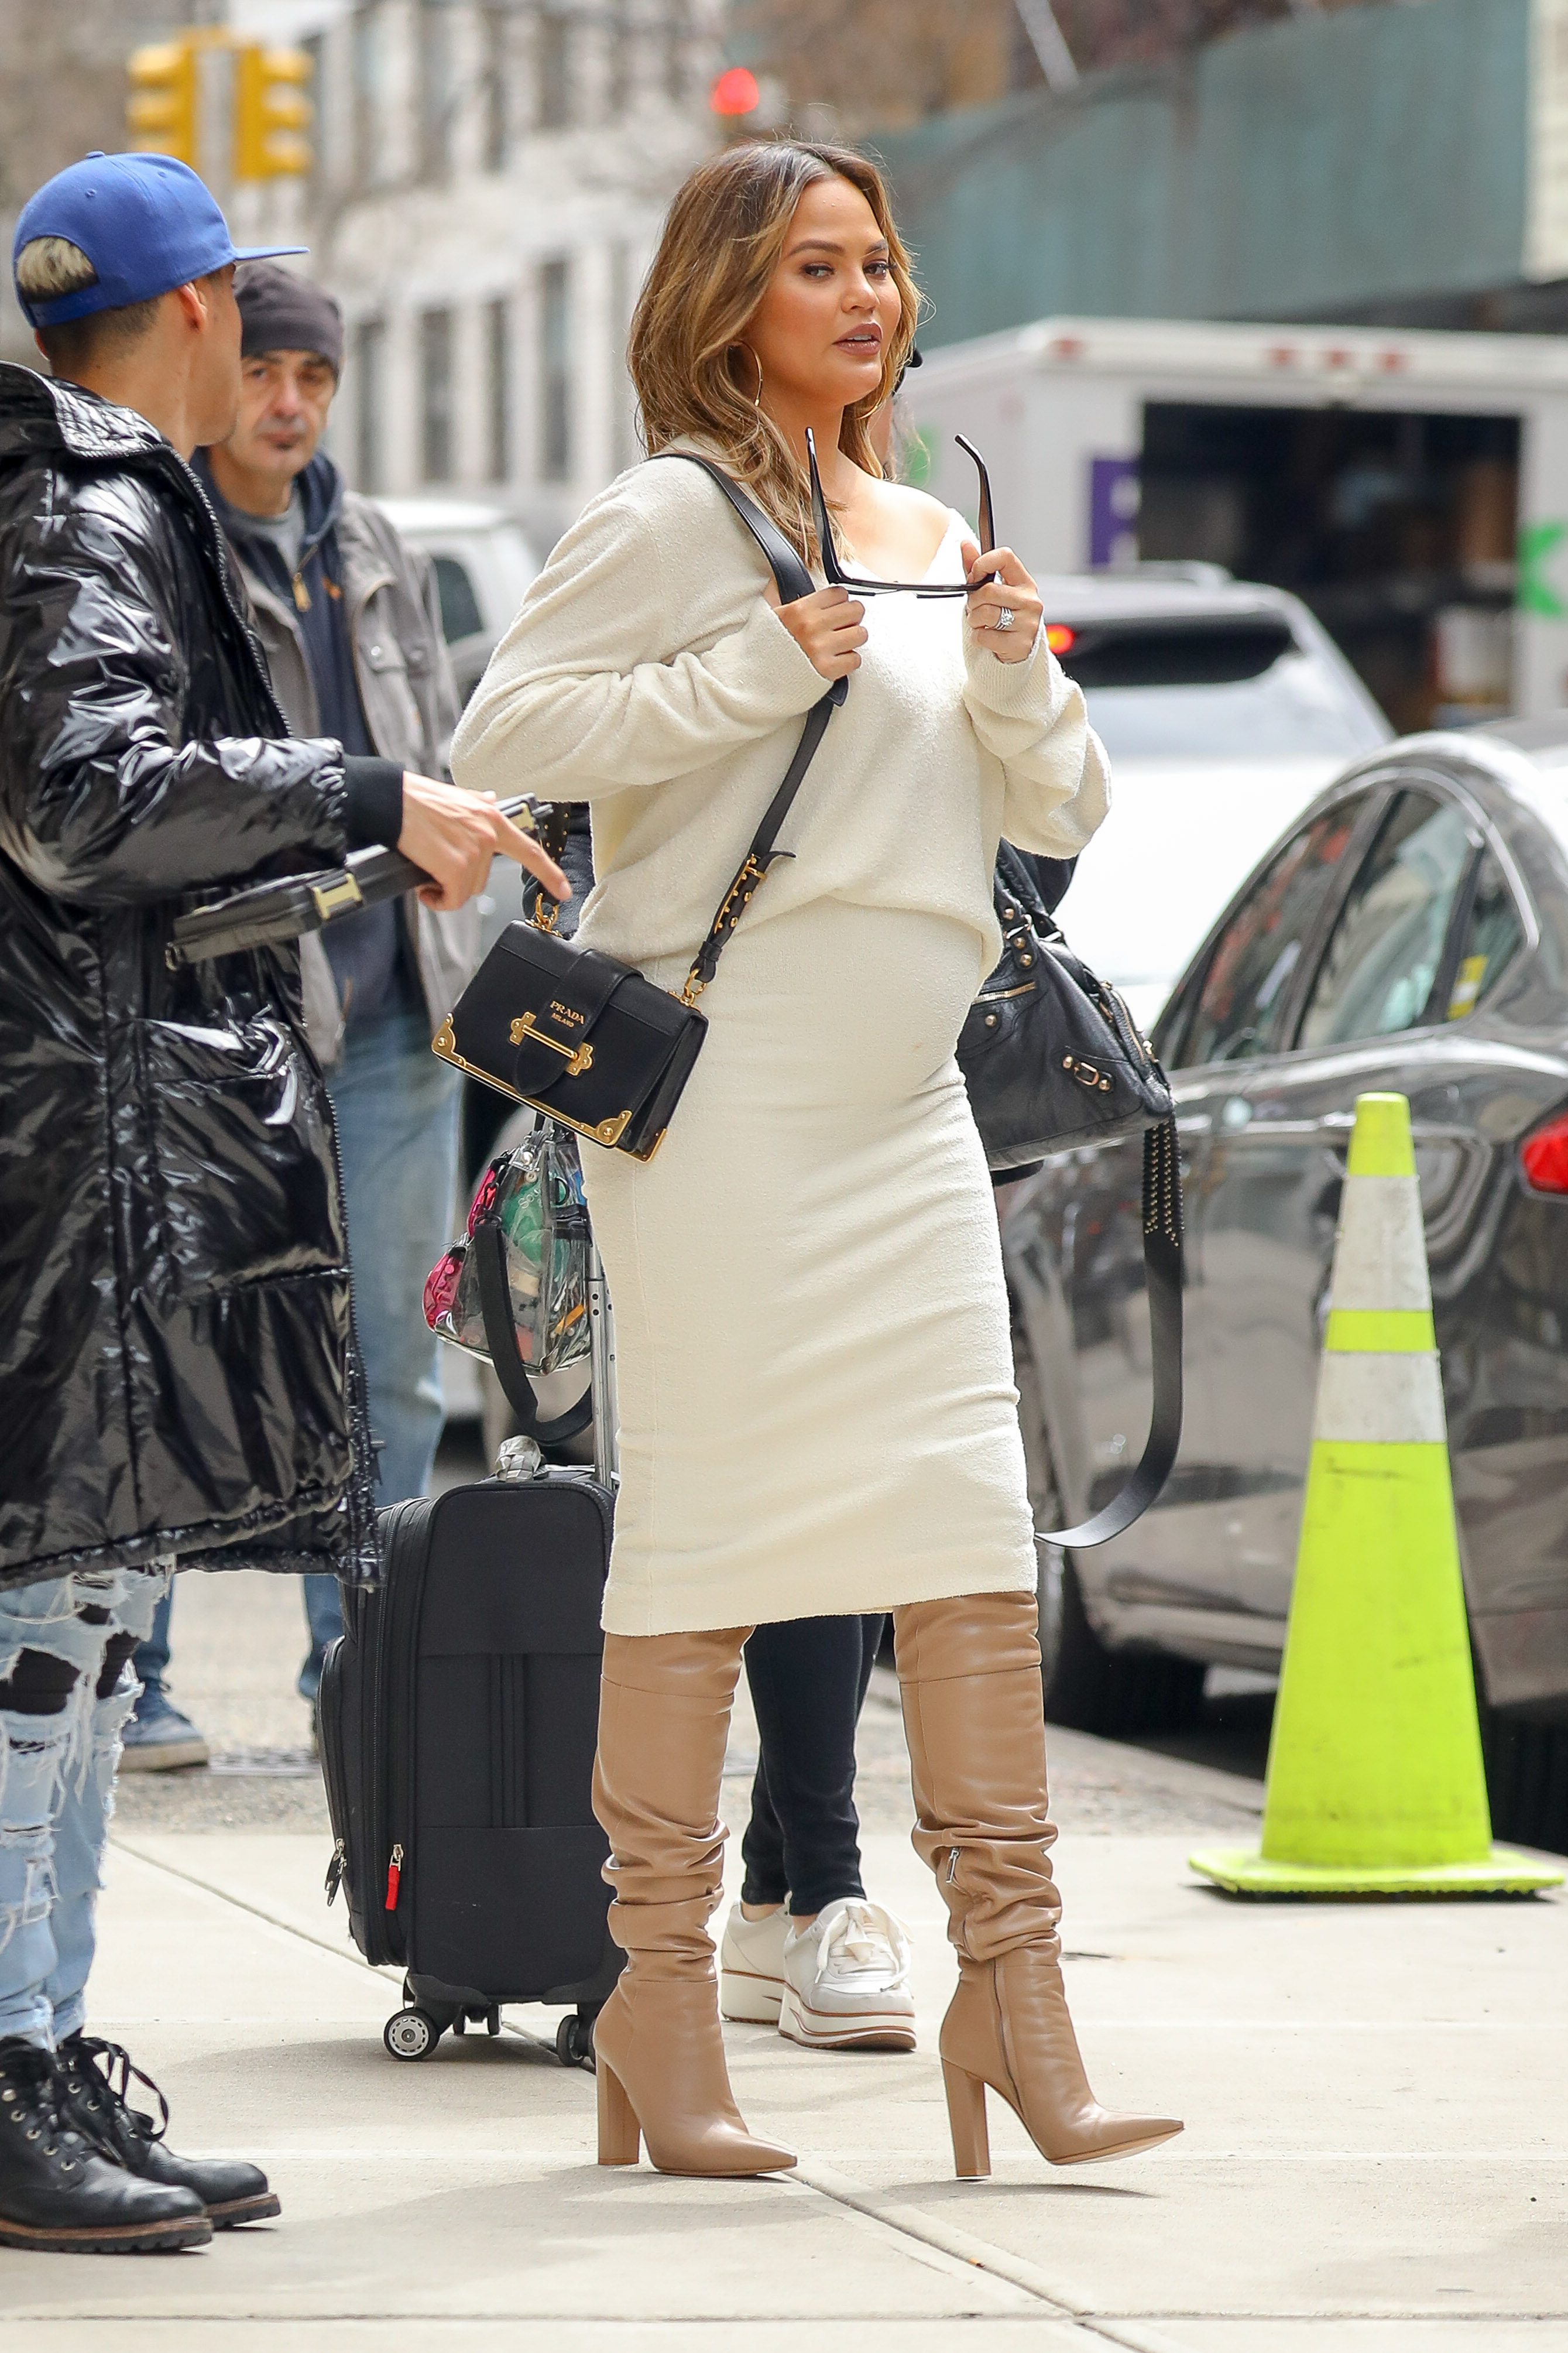 EXCLUSIVE: Chrissy Teigen wore display her belly in white outfit while out and about in New York City <P> Pictured: Chrissy Teigen <B>Ref: SPL1676397  270318   EXCLUSIVE</B><BR/> Picture by: Felipe Ramales / Splash News<BR/> </P><P> <B>Splash News and Pictures</B><BR/> Los Angeles:310-821-2666<BR/> New York:212-619-2666<BR/> London:870-934-2666<BR/> <span id=